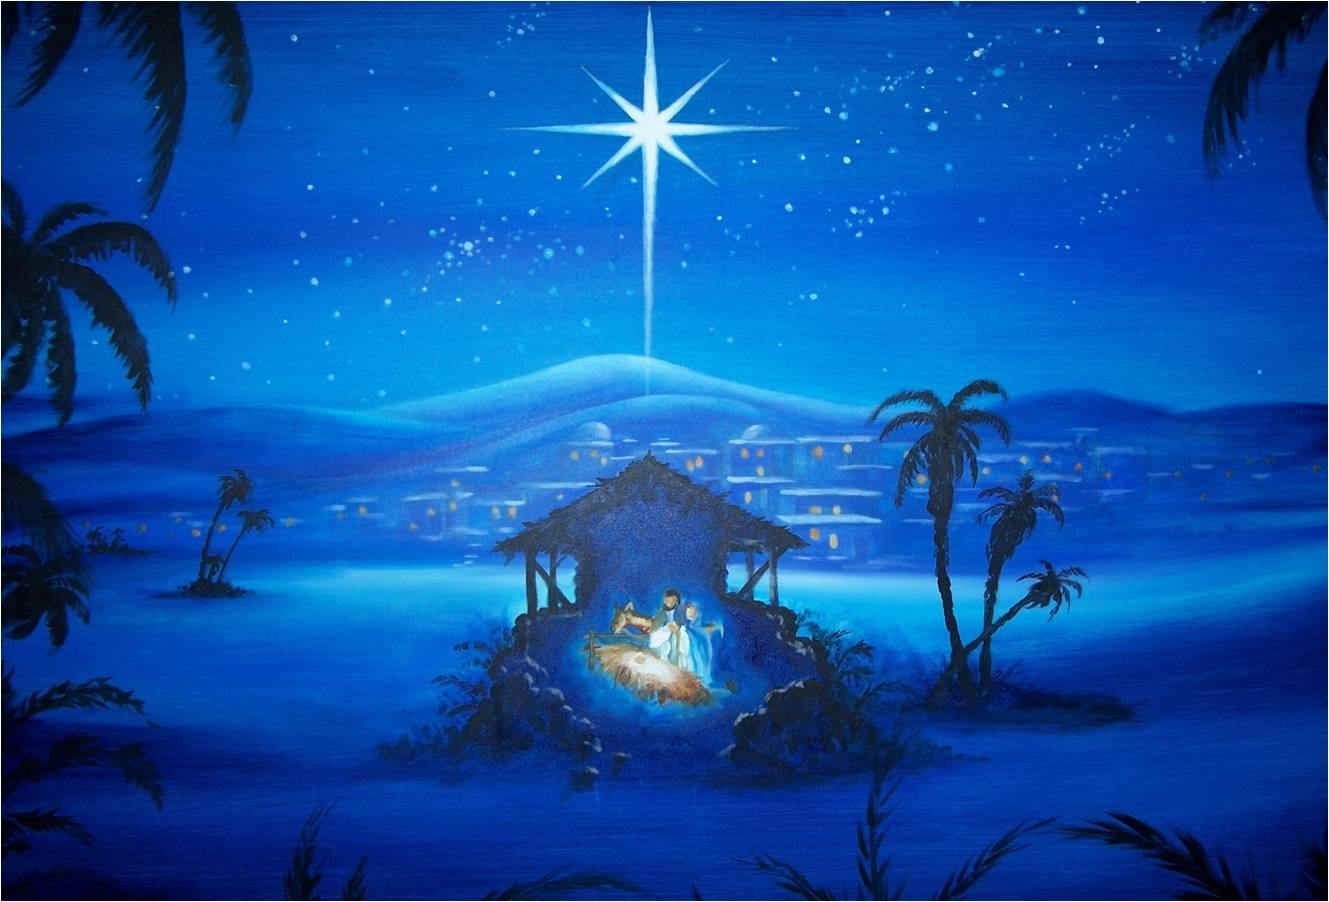 Christmas Painting Computer Wallpapers 1329x902